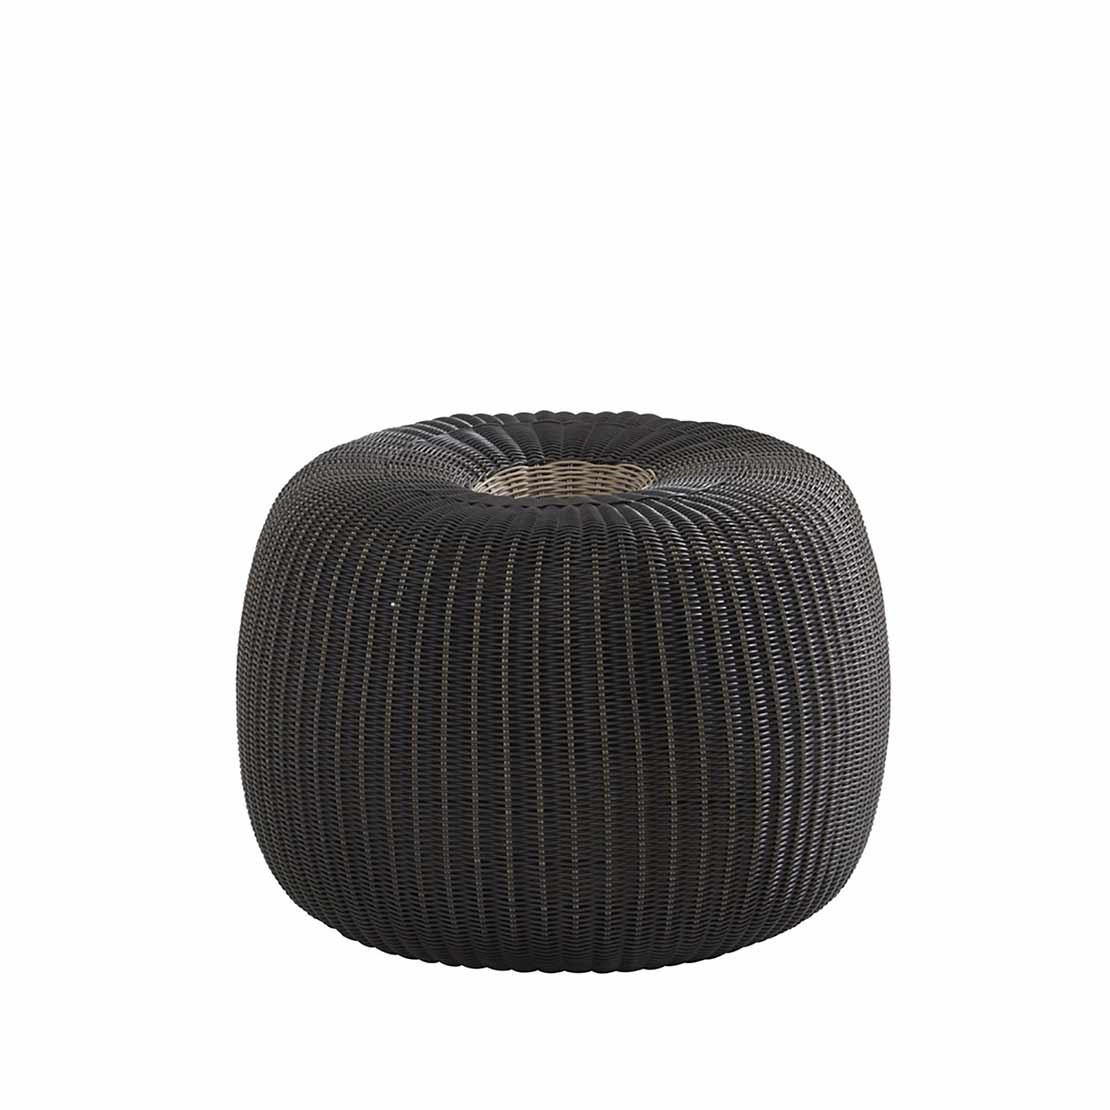 Big Donut anthracite hocker